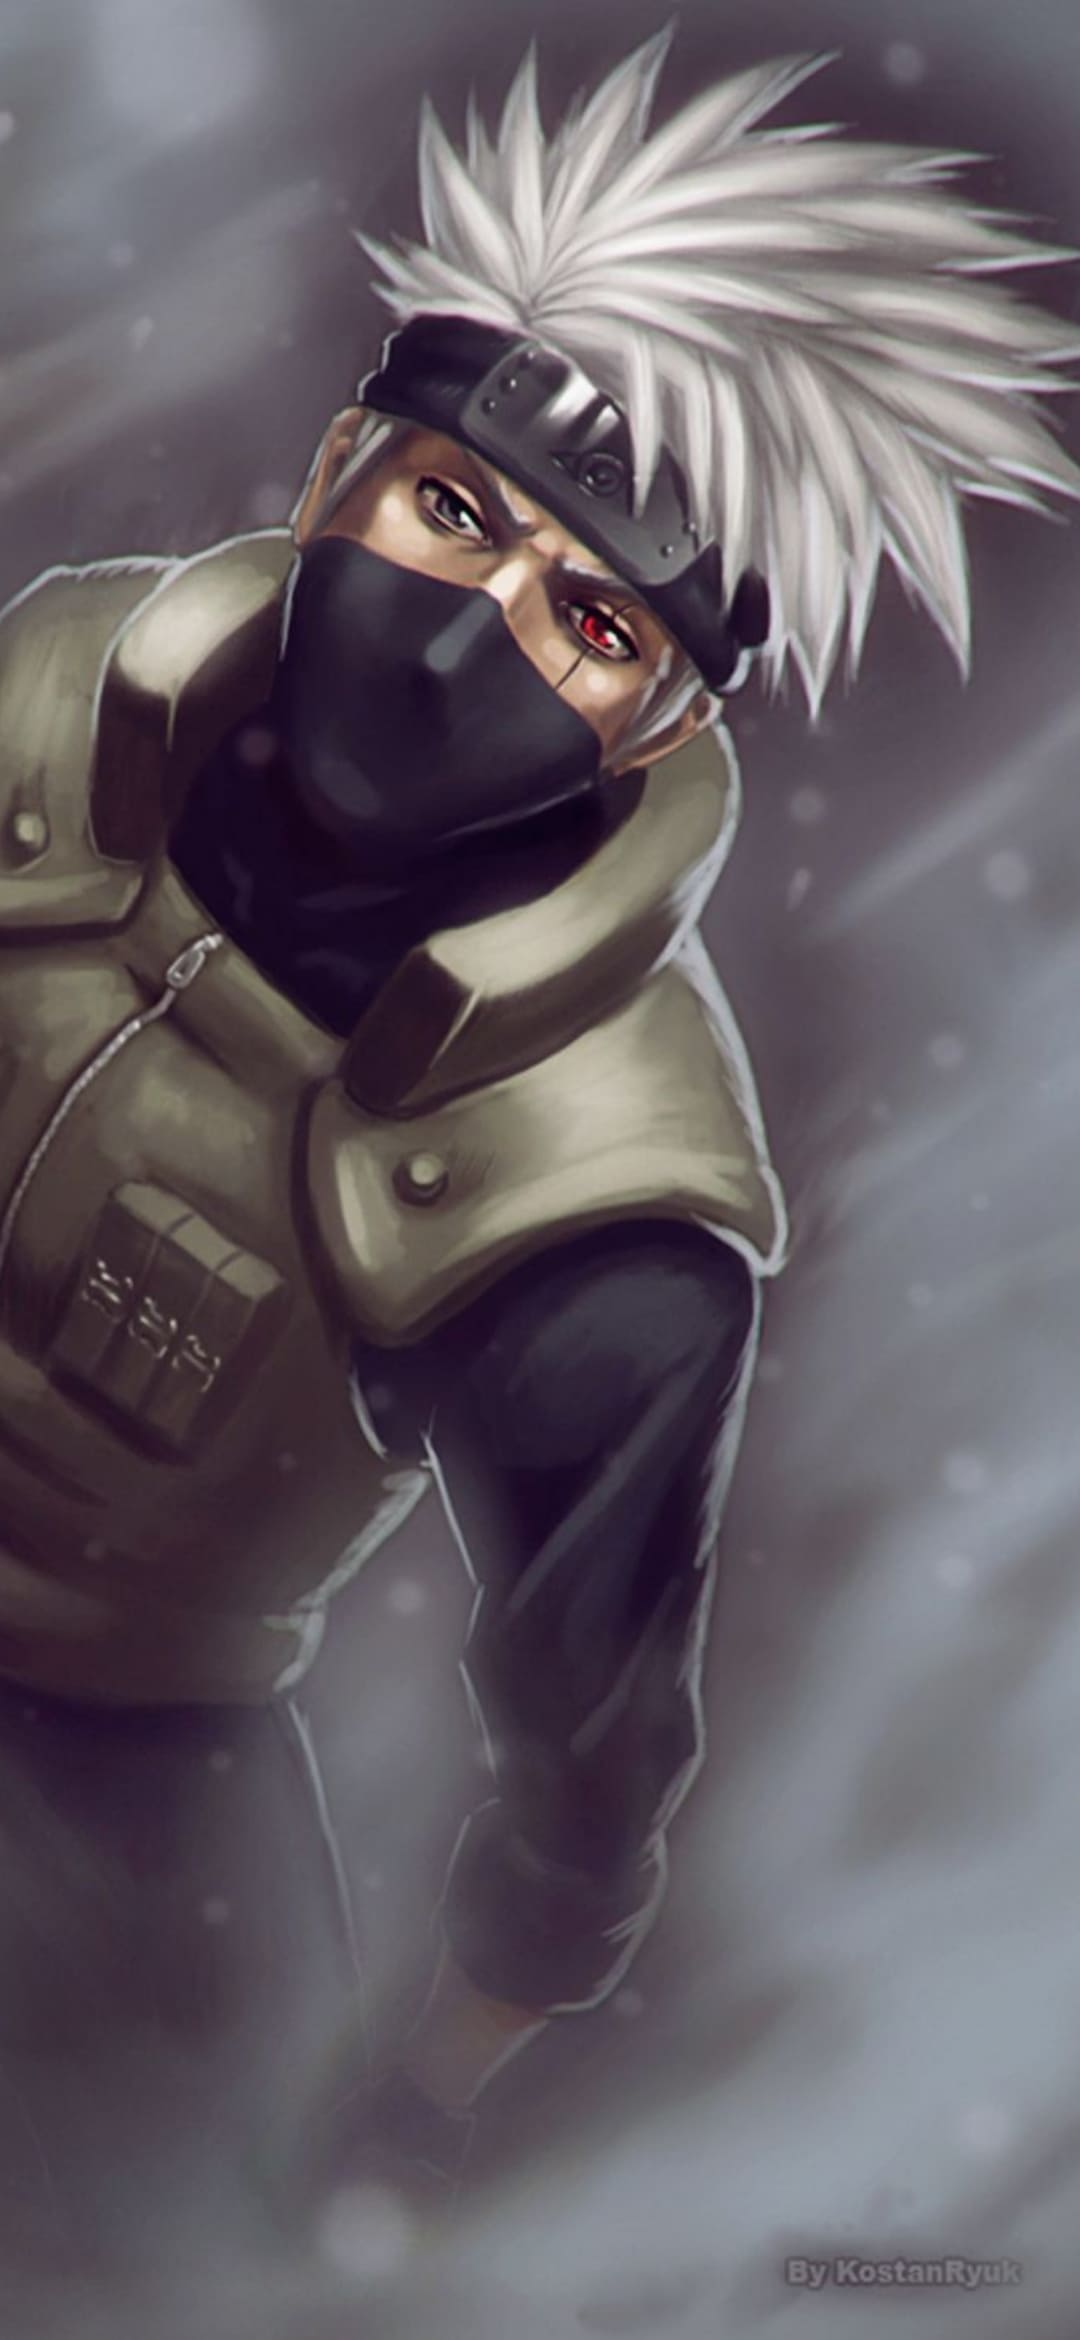 75 ᐈ Kakashi Hatake Wallpapers Top 4k Kakashi Hatake Wallpaper Download Hd